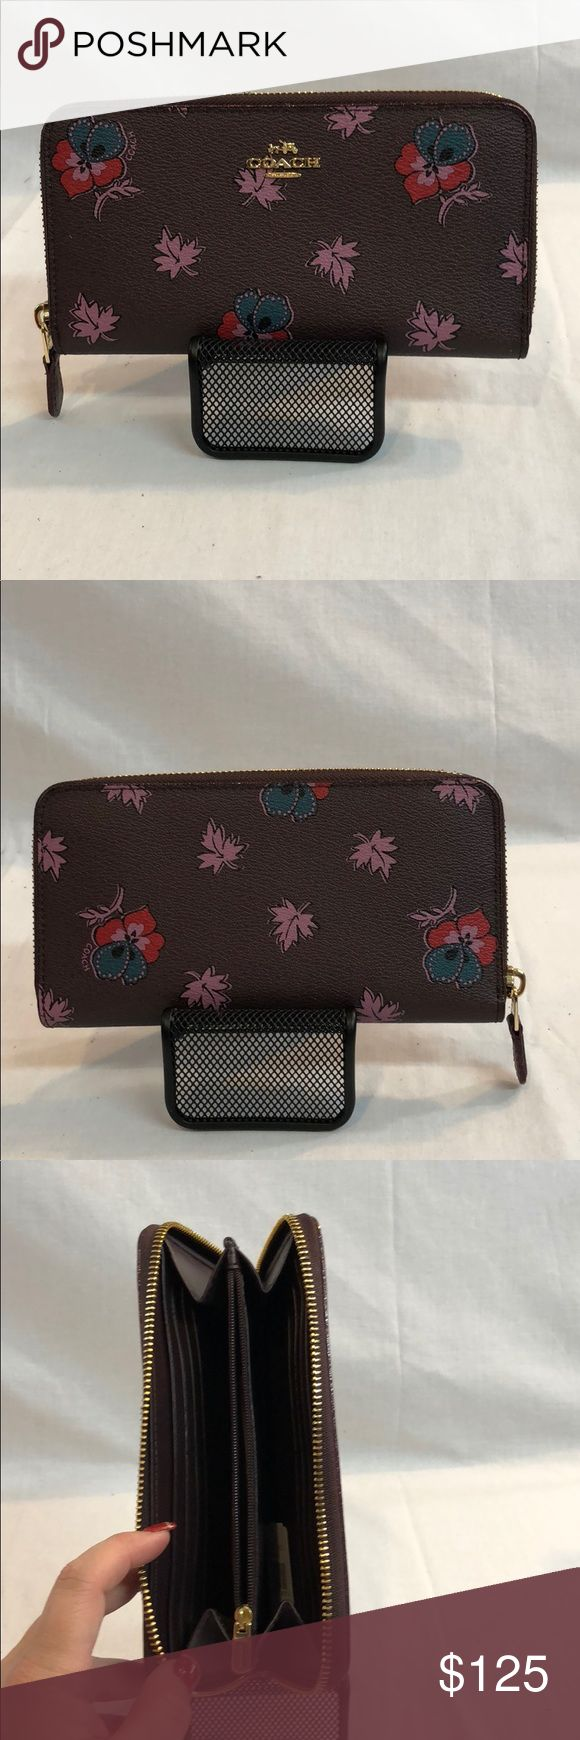 """Coach wallet F15155 ACCORDION ZIP WALLET IN WILDFLOWER PRINT COATED CANVAS (COACH f15155) LIGHT GOLD/OXBLOOD 1 Details Printed coated canvas Twelve credit card slots Full-length bill compartments Zip coin pocket Zip-around closure 7 1/2"""" (L) x 4"""" (H) Fits all phone sizes up to an iPhone 7 Plus and Samsung S7 Edge Coach Bags Wallets"""